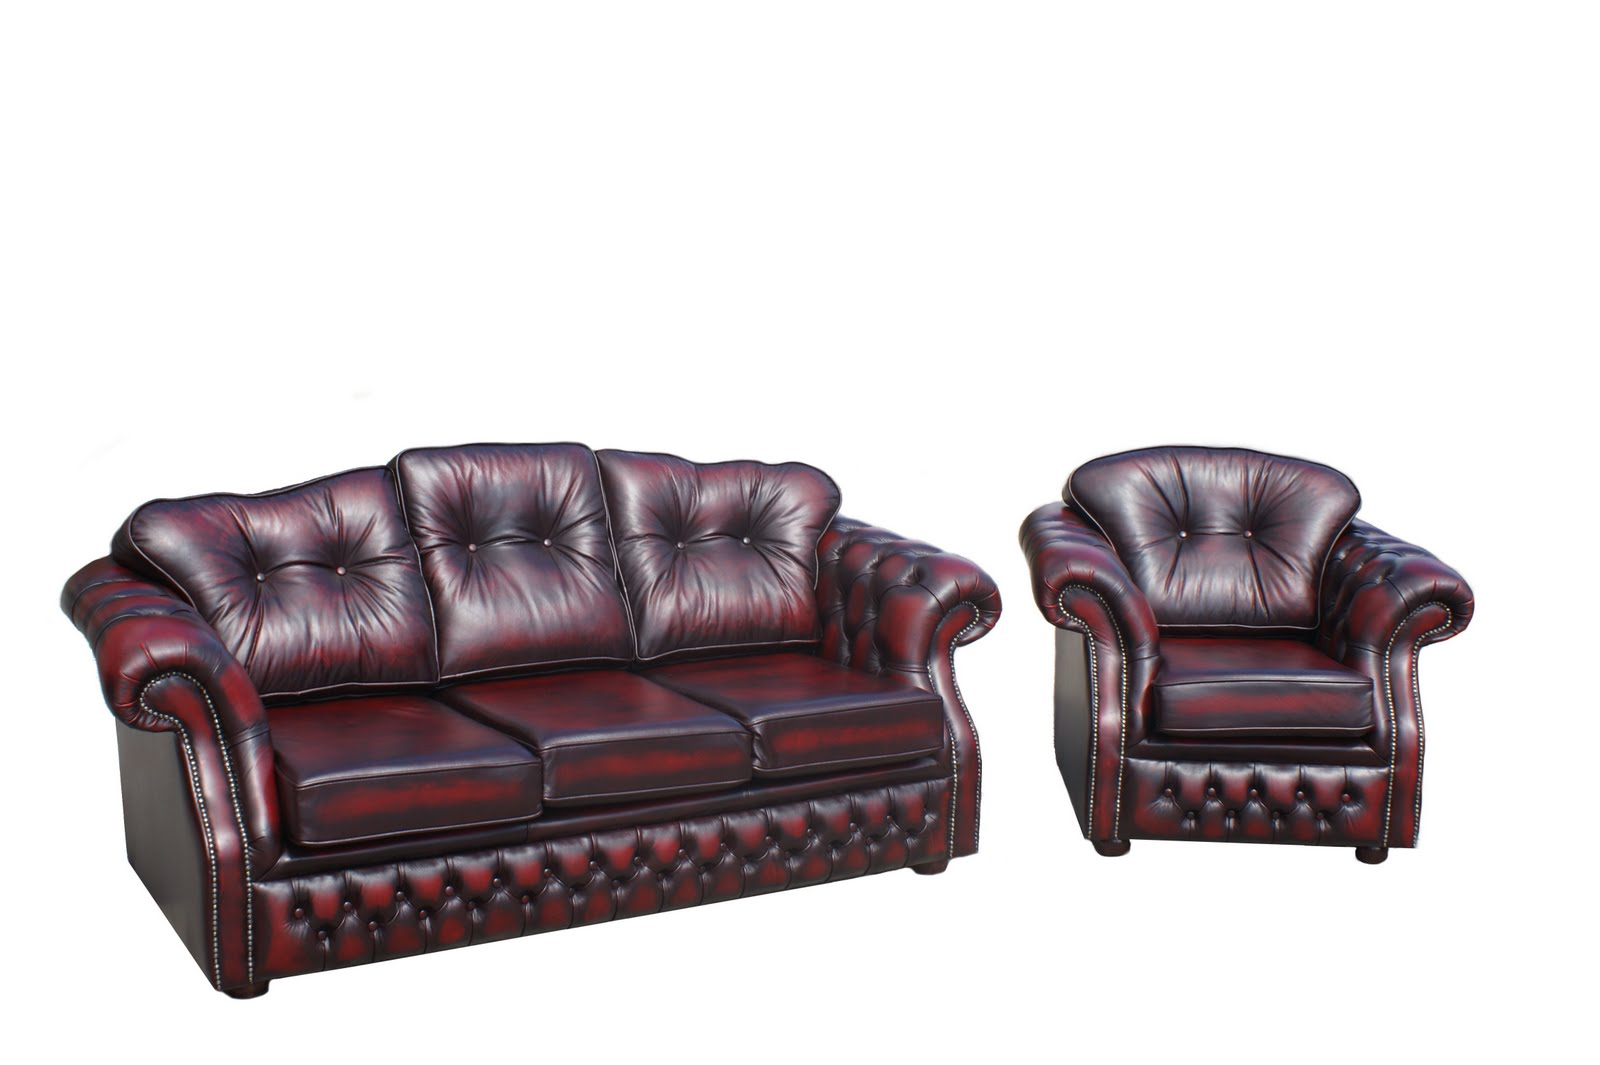 Chesterfield Sofas: Chesterfield Sofa On Craiglist